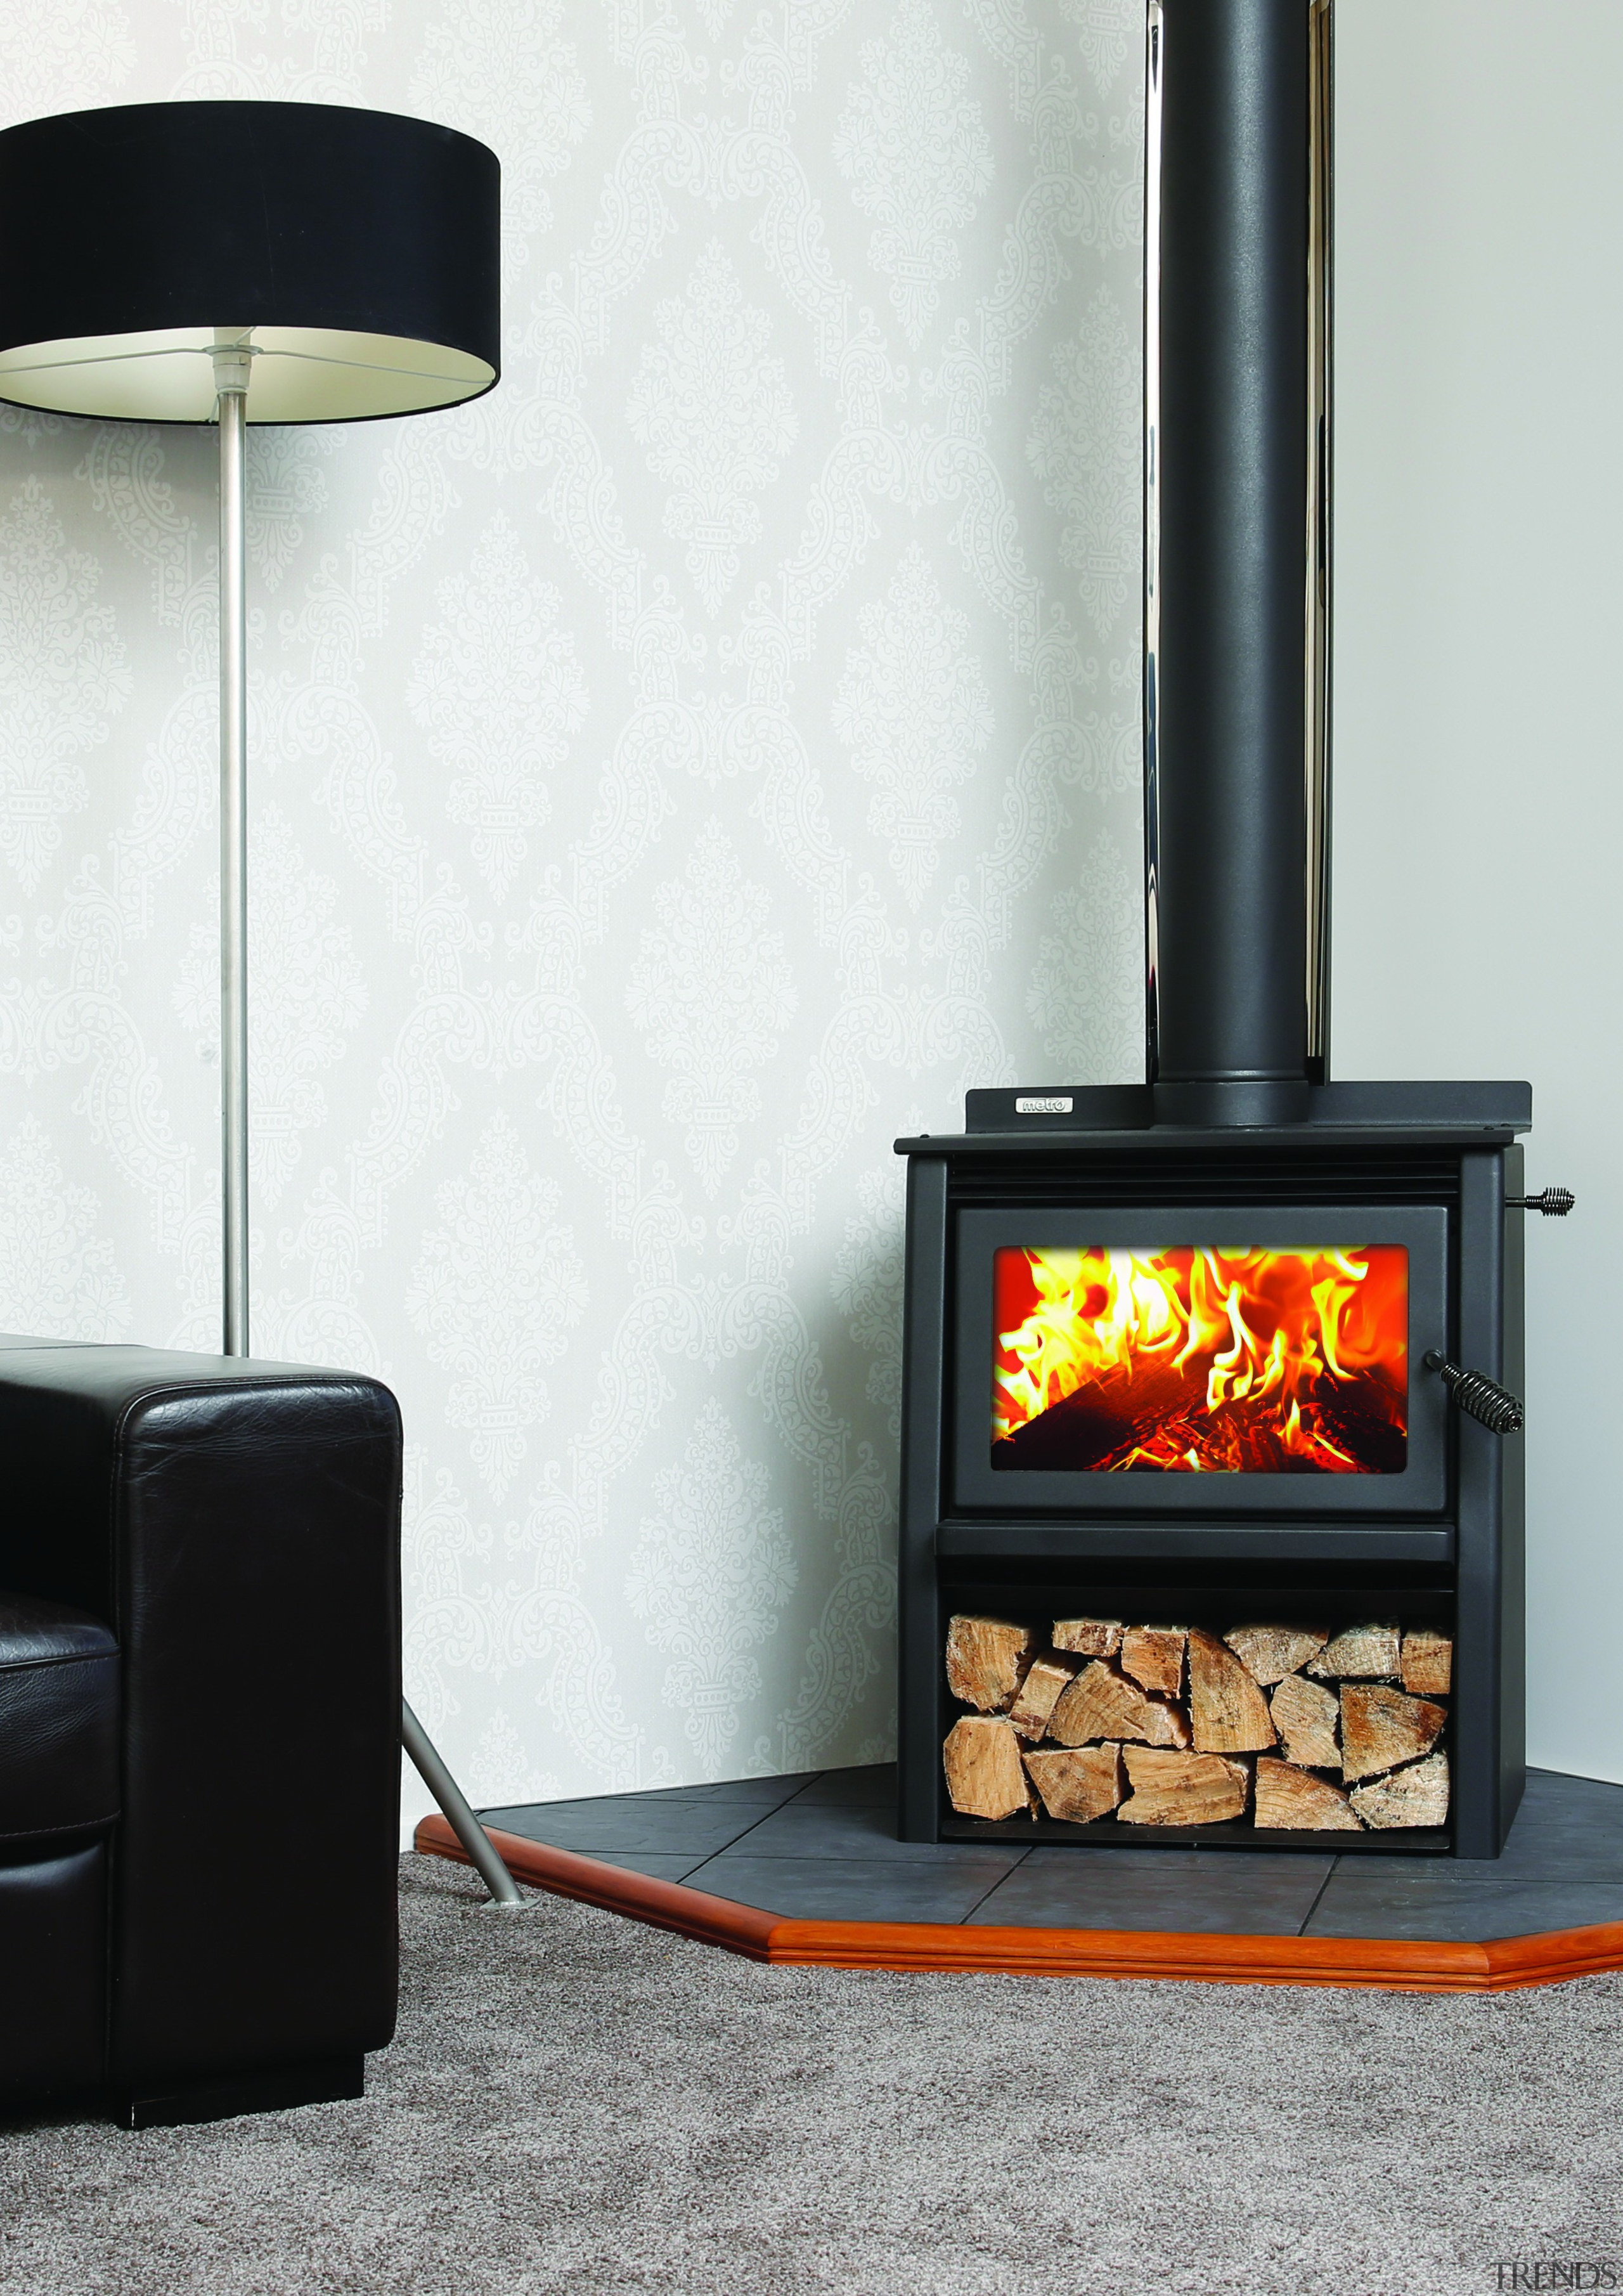 Metro Fires Wee Rad Woody 15kW Fire - hearth, heat, home appliance, stove, wood burning stove, white